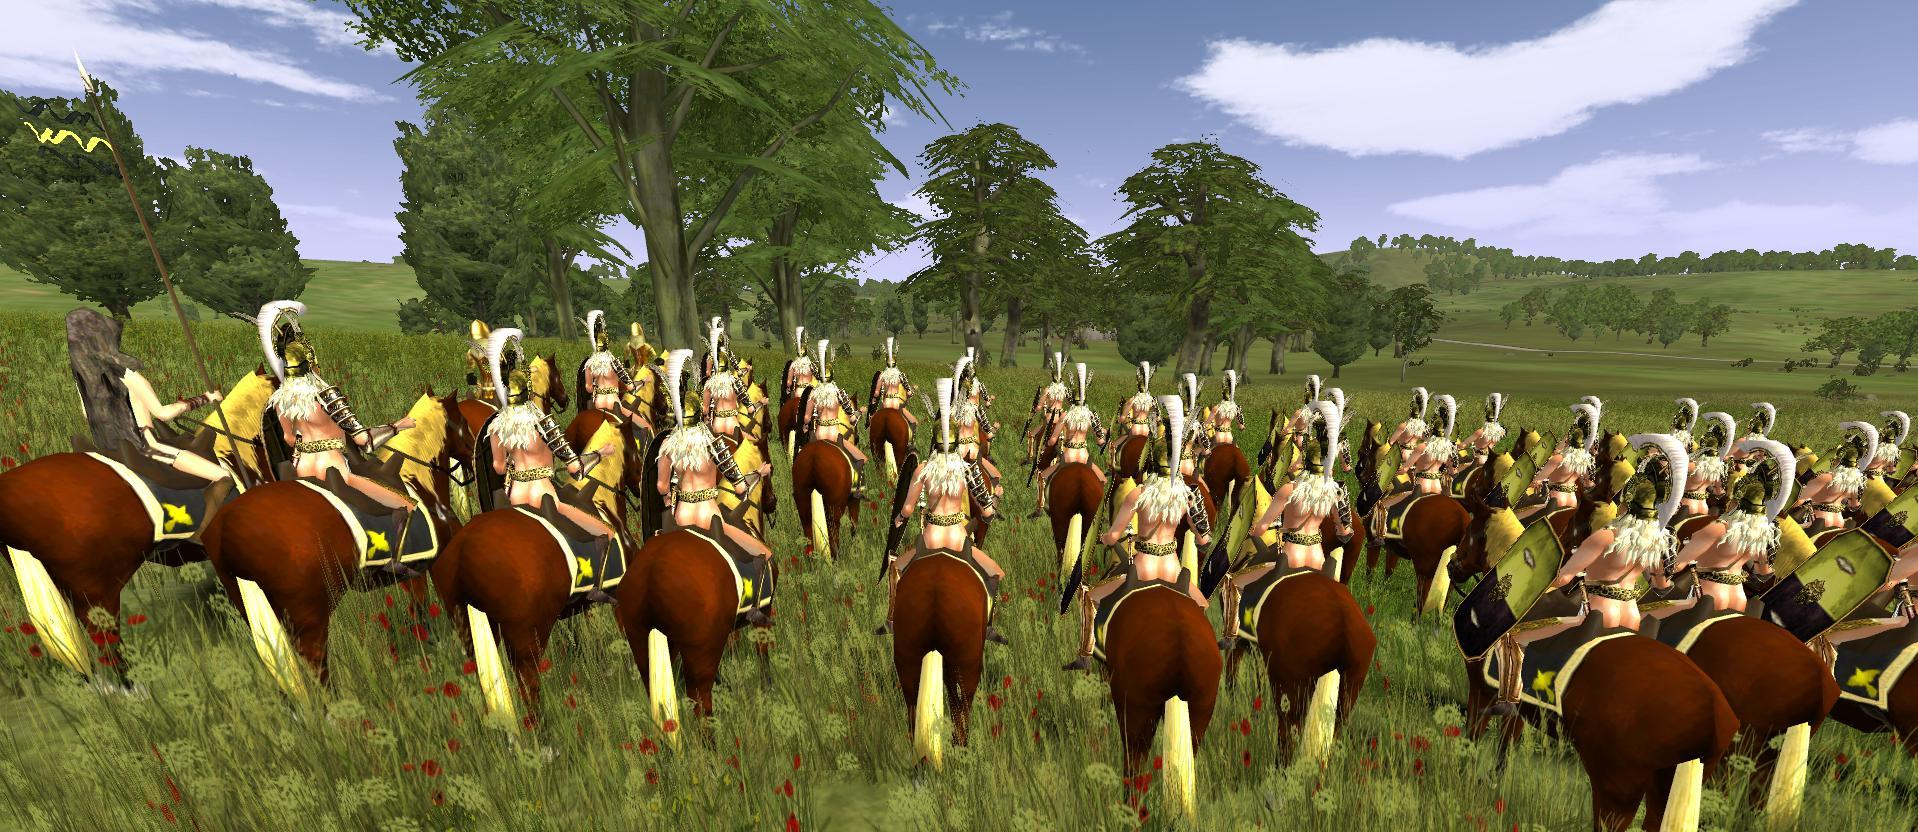 Rome total war nude mods sex images